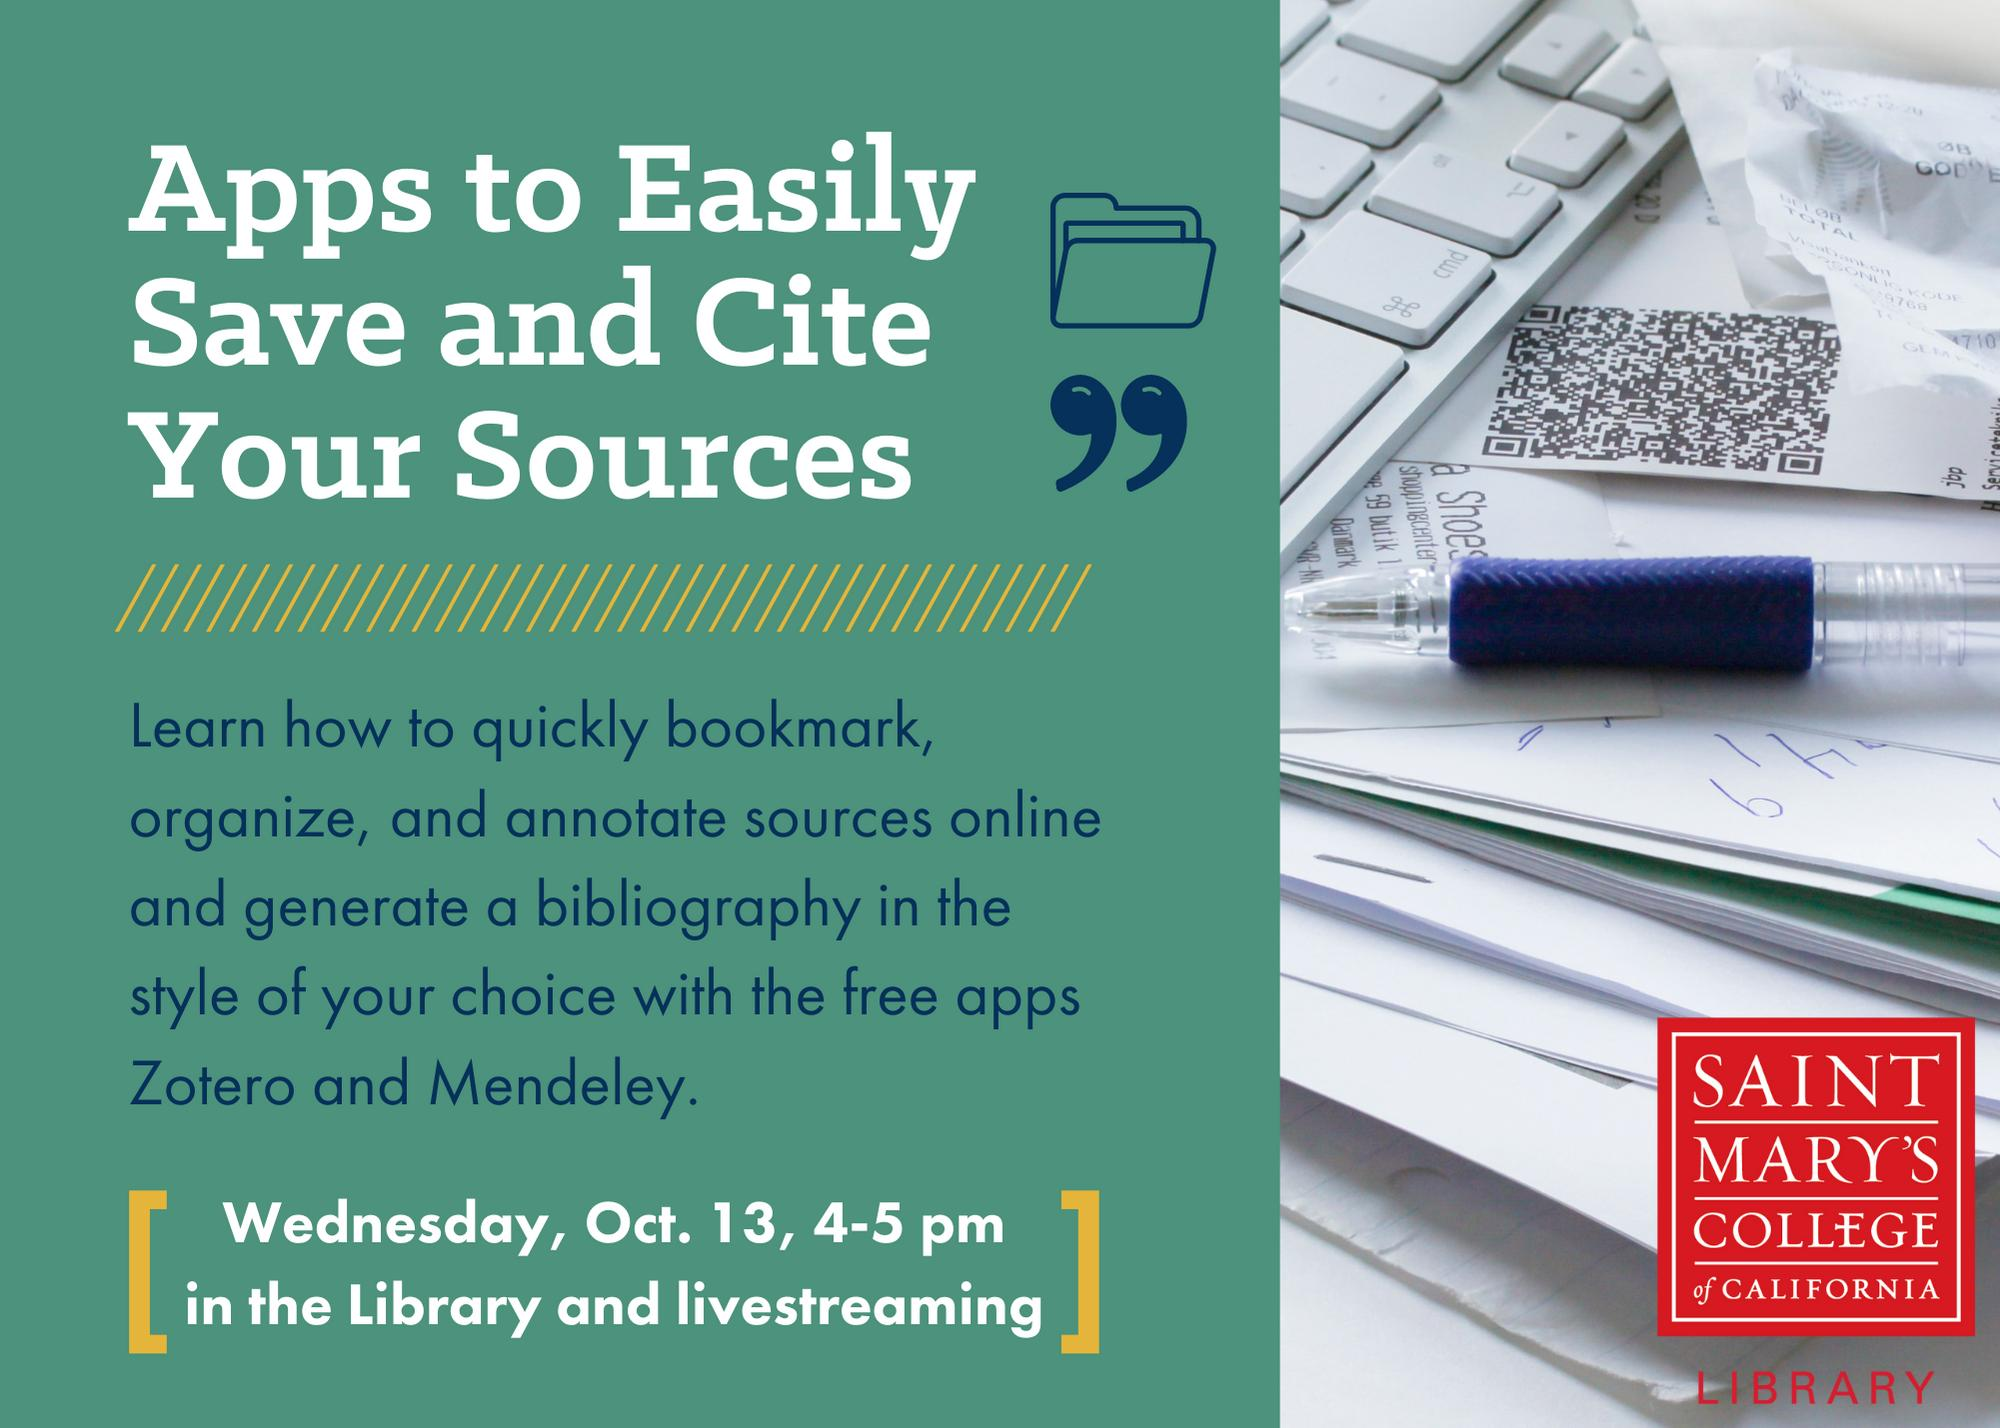 Apps to Easily Save and Cite Your Sources flyer